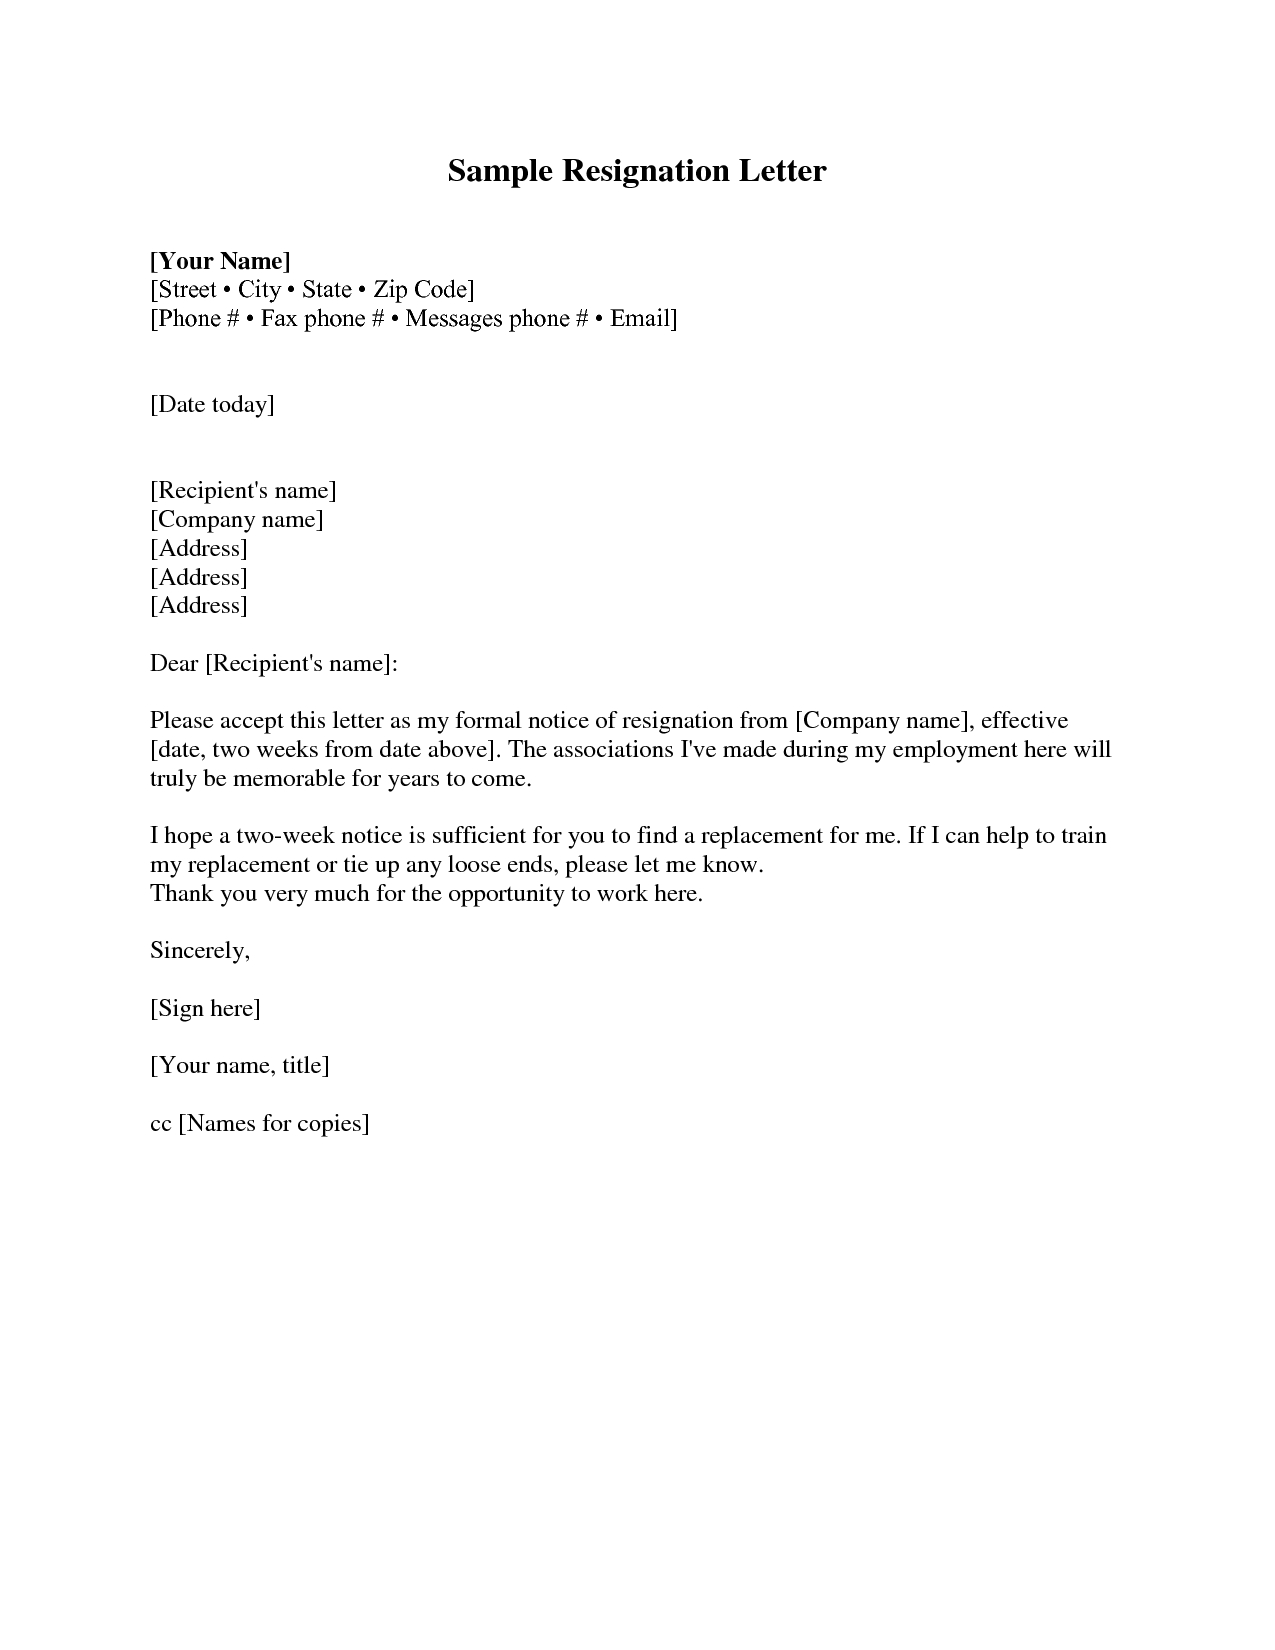 Professional Resignation Letter Template - Resignation Letter Sample 2 Weeks Notice Free2img